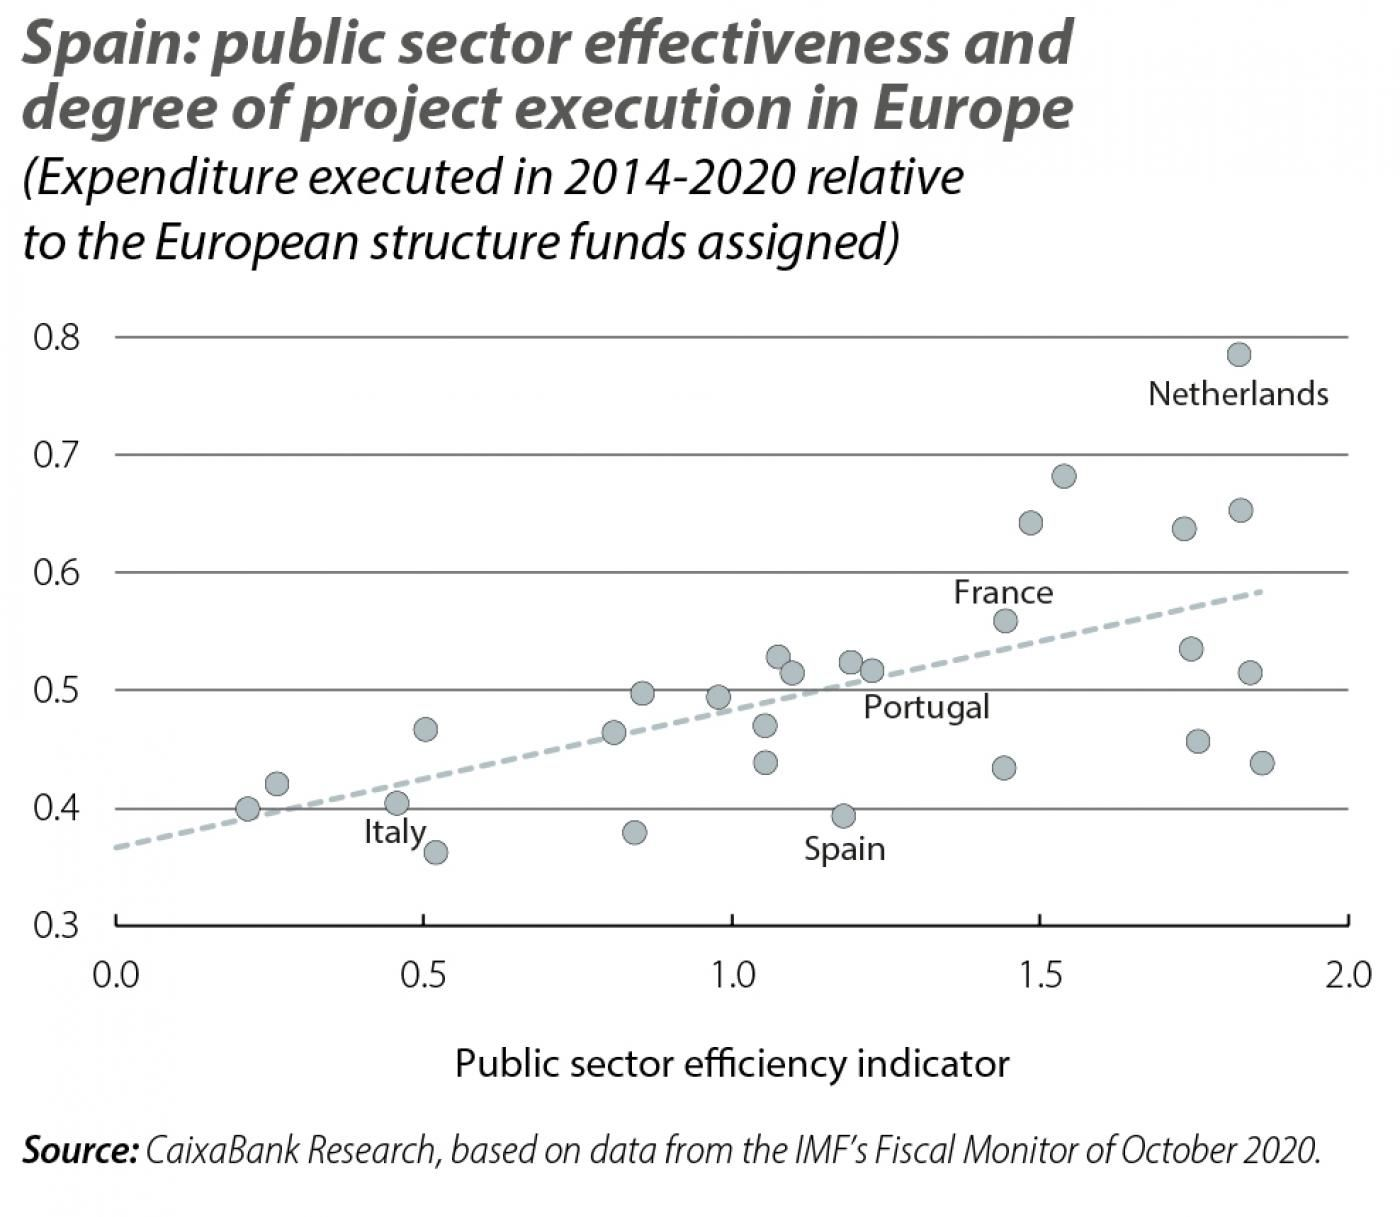 Spain: public sector effectiveness and degree of project execution in Europe